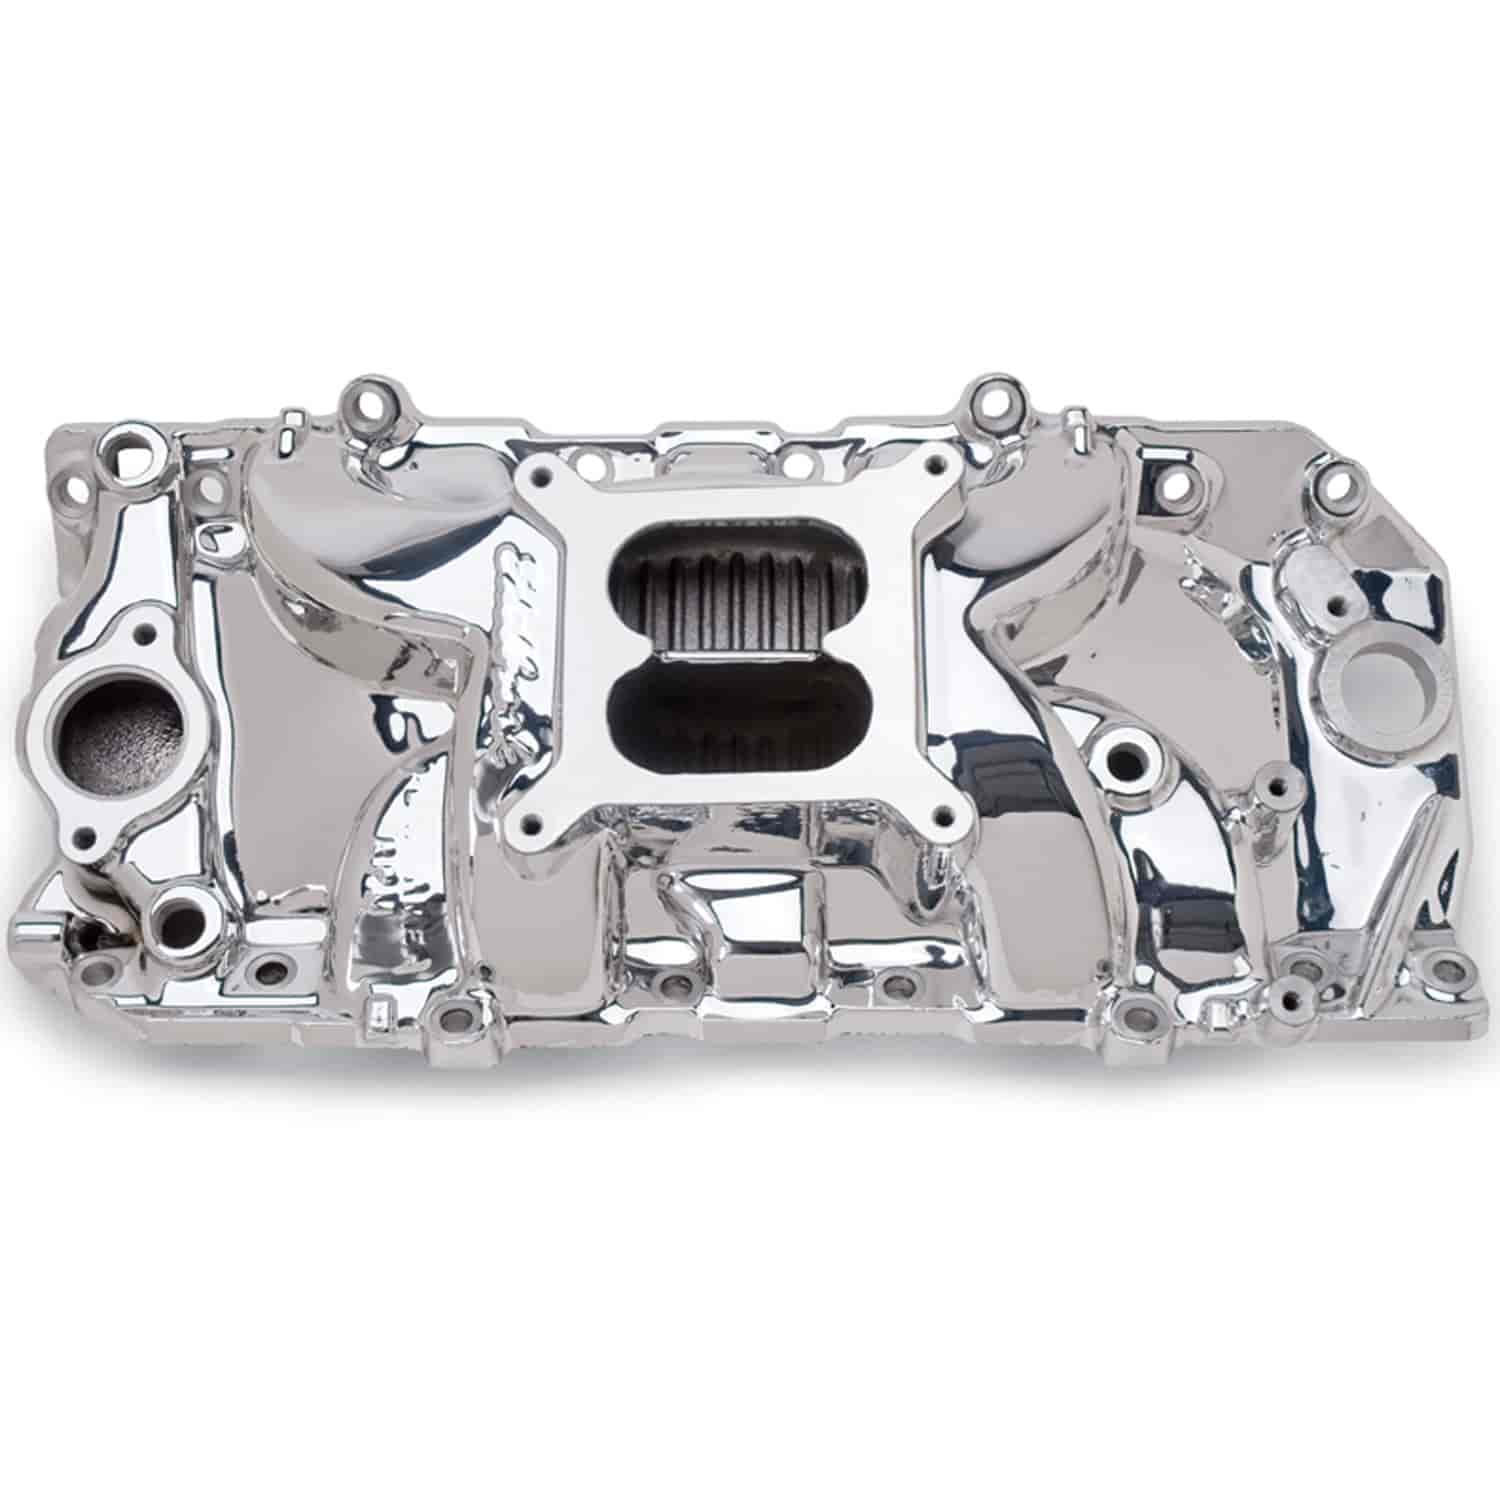 Edelbrock 71614 - Edelbrock Performer RPM Intake Manifolds & Kits for Chevrolet